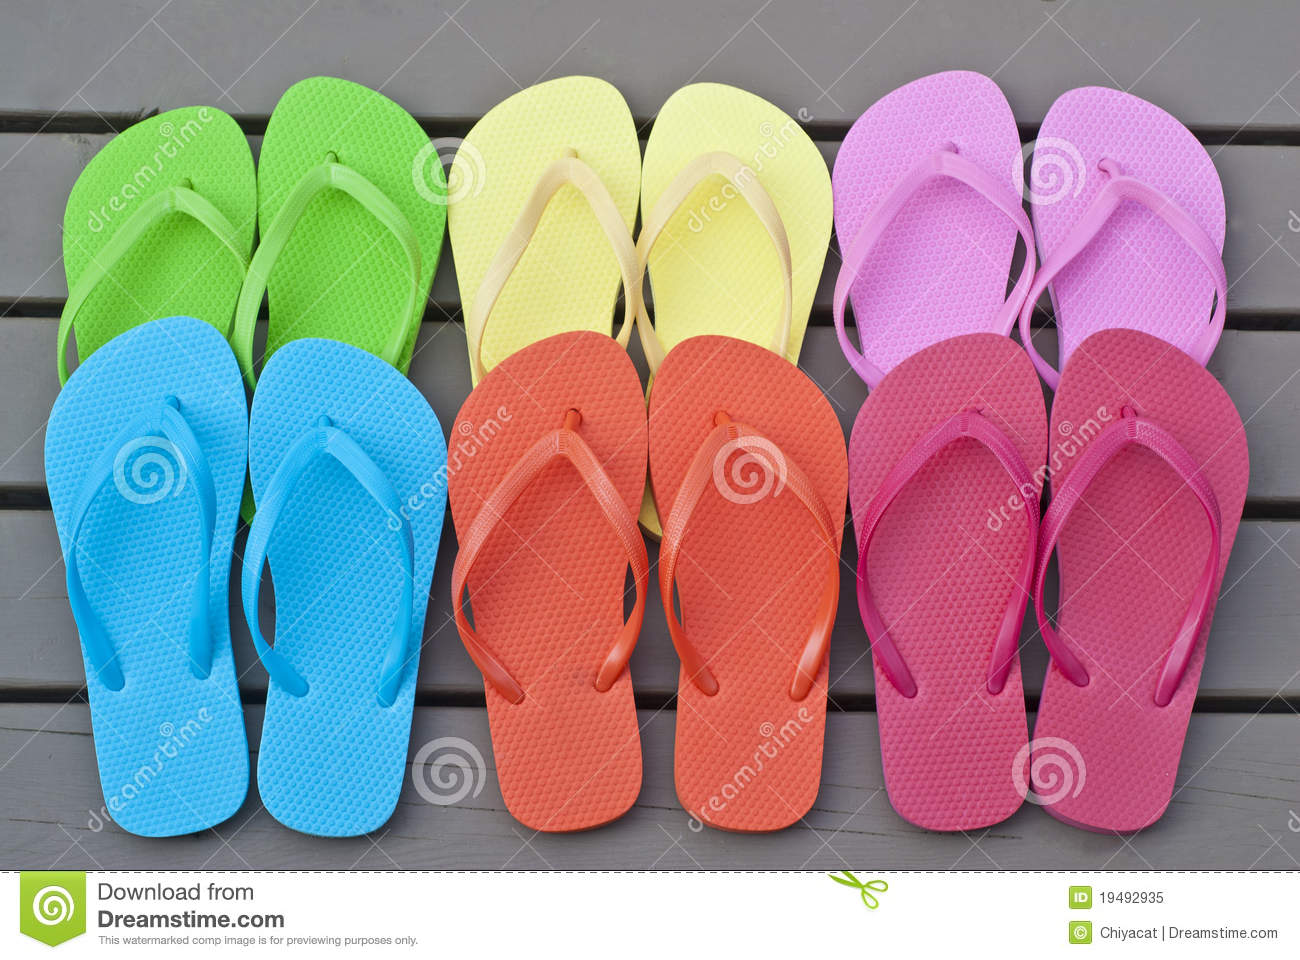 e831e4104 Colorful Flip Flops On The Deck Stock Image - Image of colorful ...